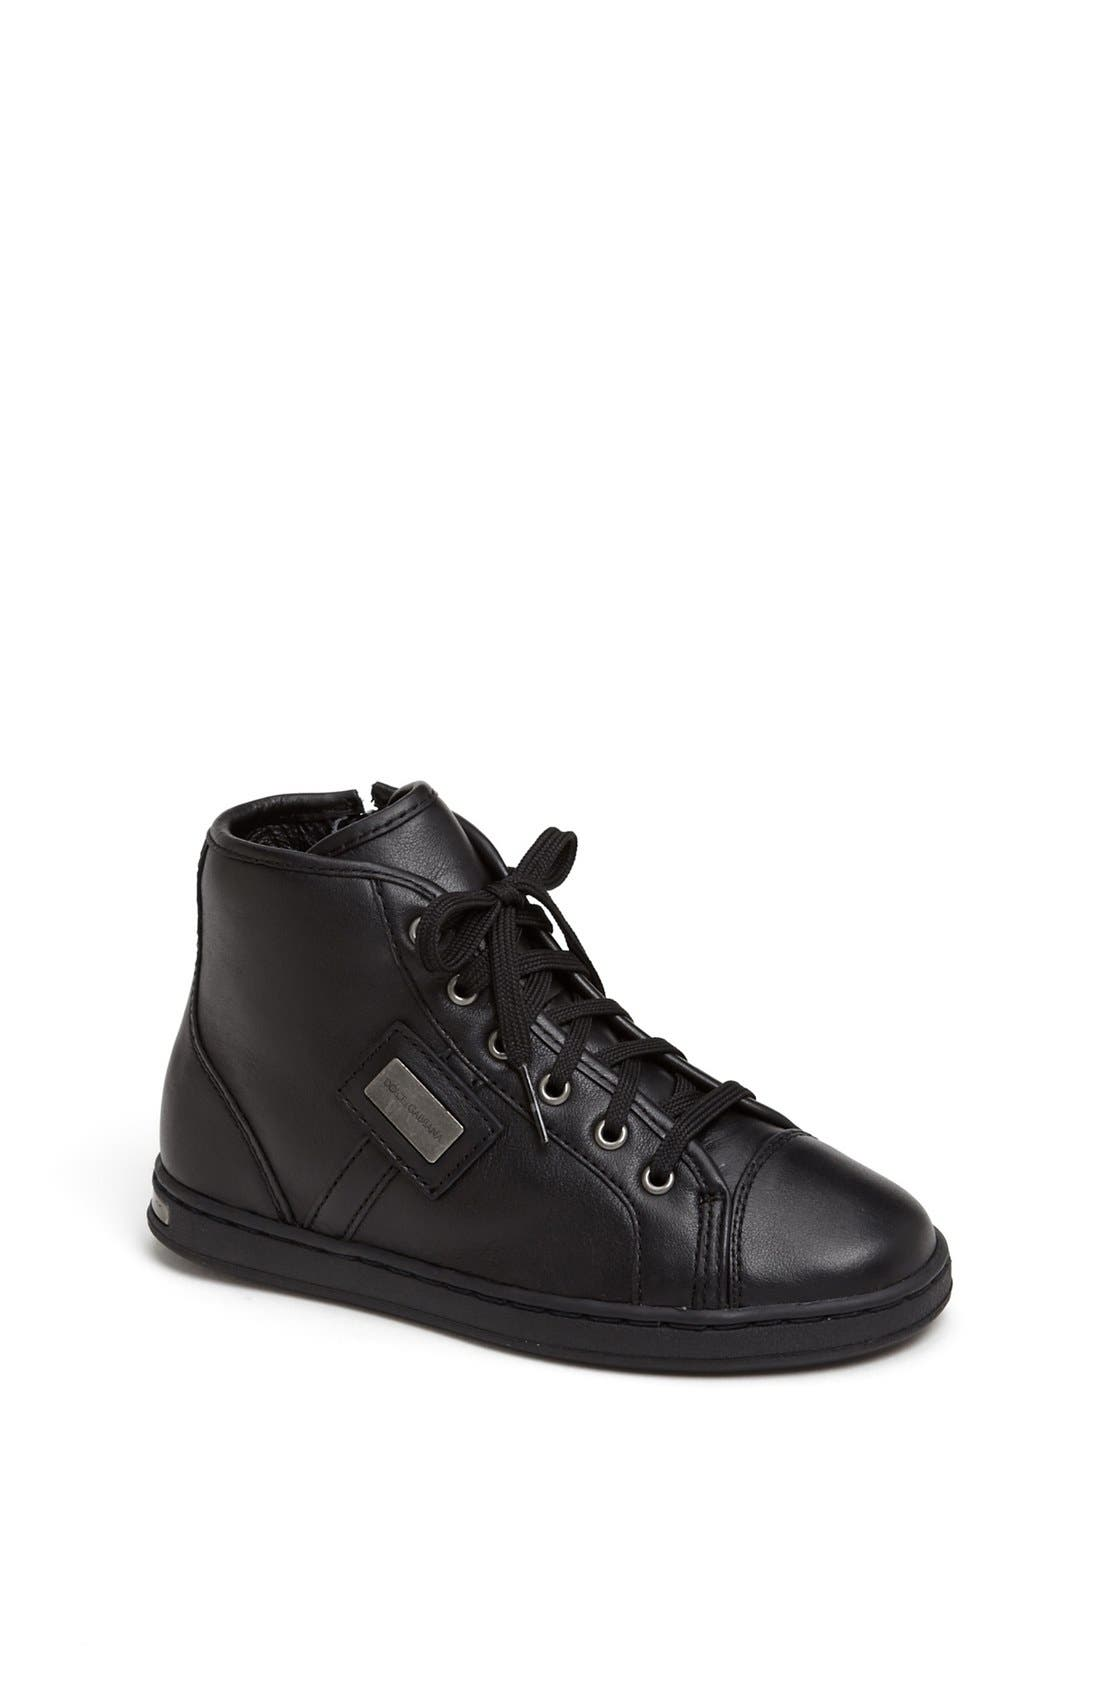 Main Image - Dolce&Gabbana High Top Sneaker (Toddler & Little Kid)